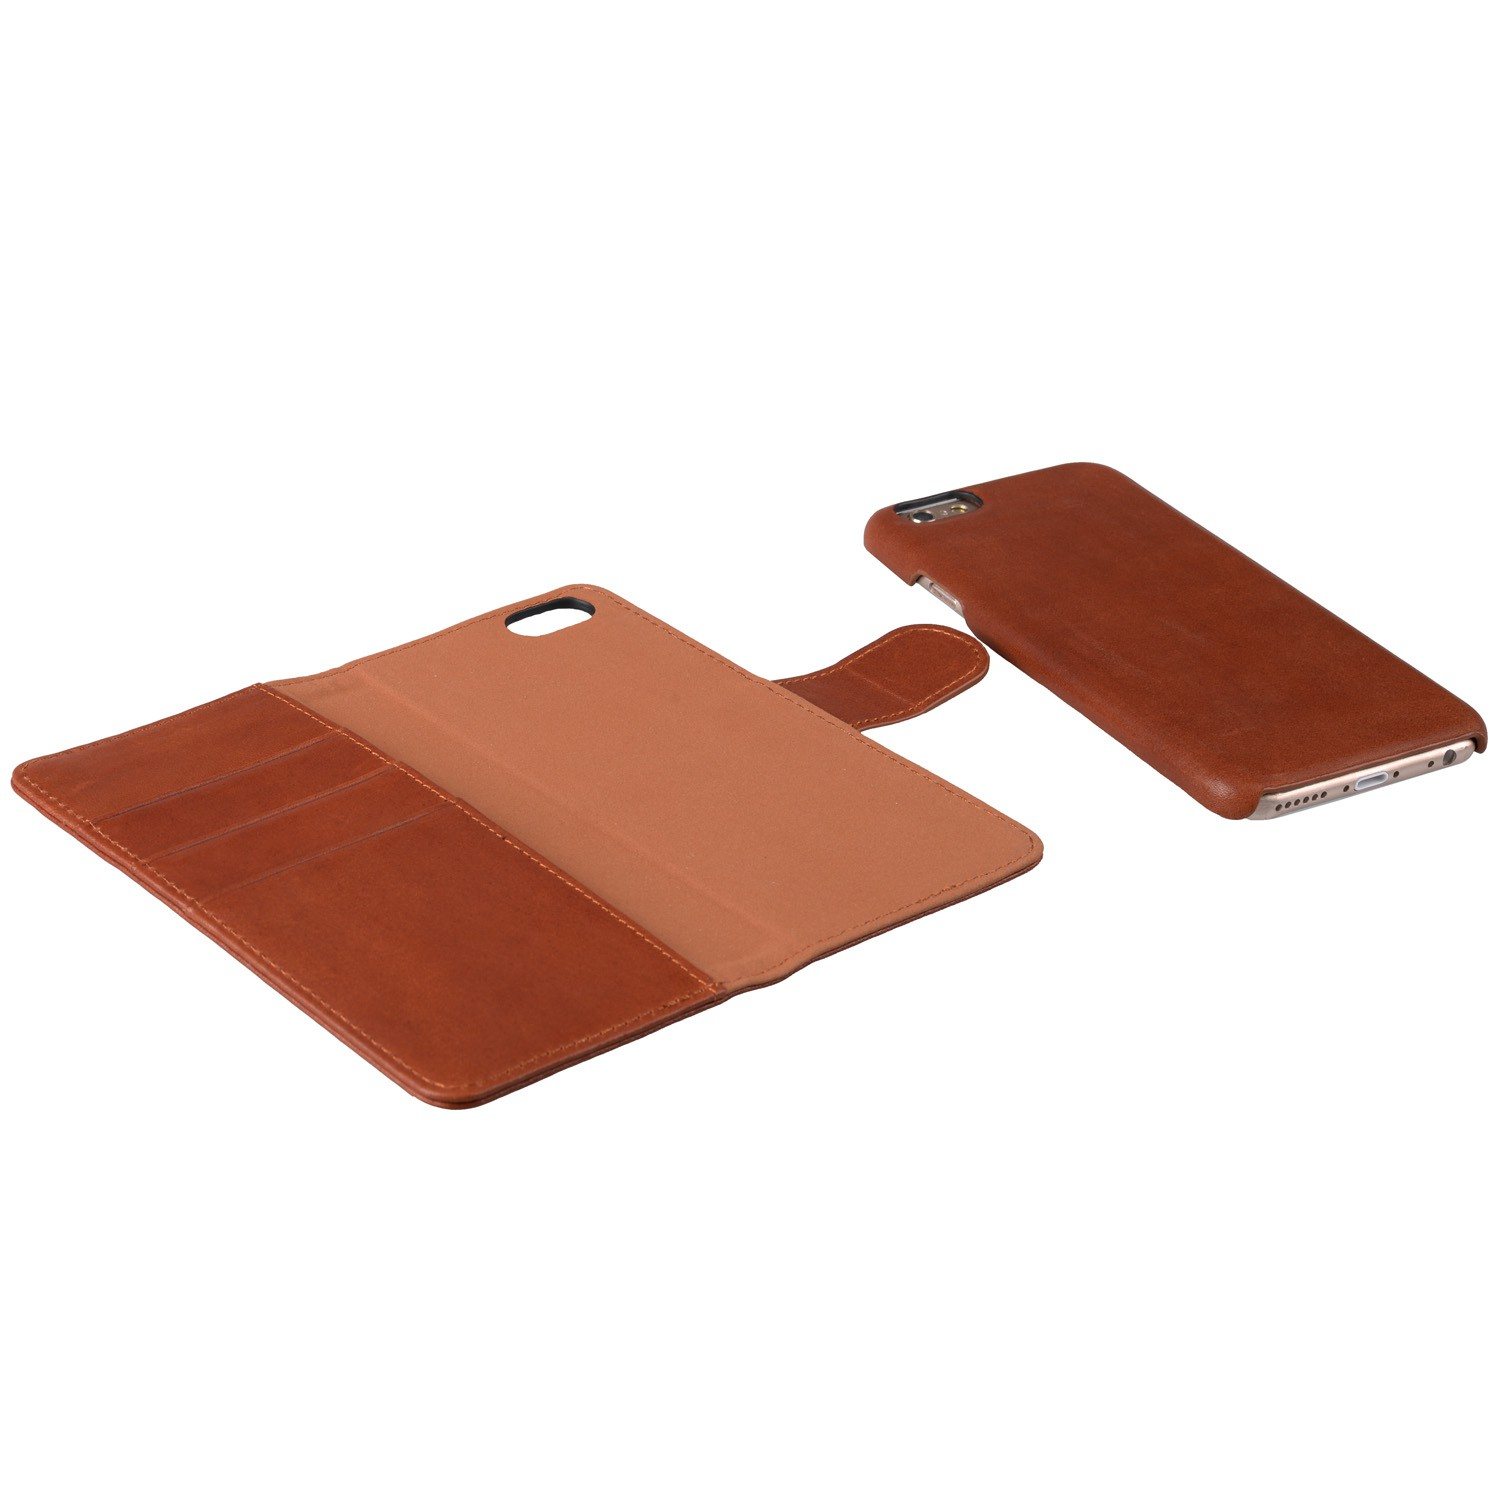 Mekco Alphard Wallet Case iPhone 6/6S Tan Brown - 3